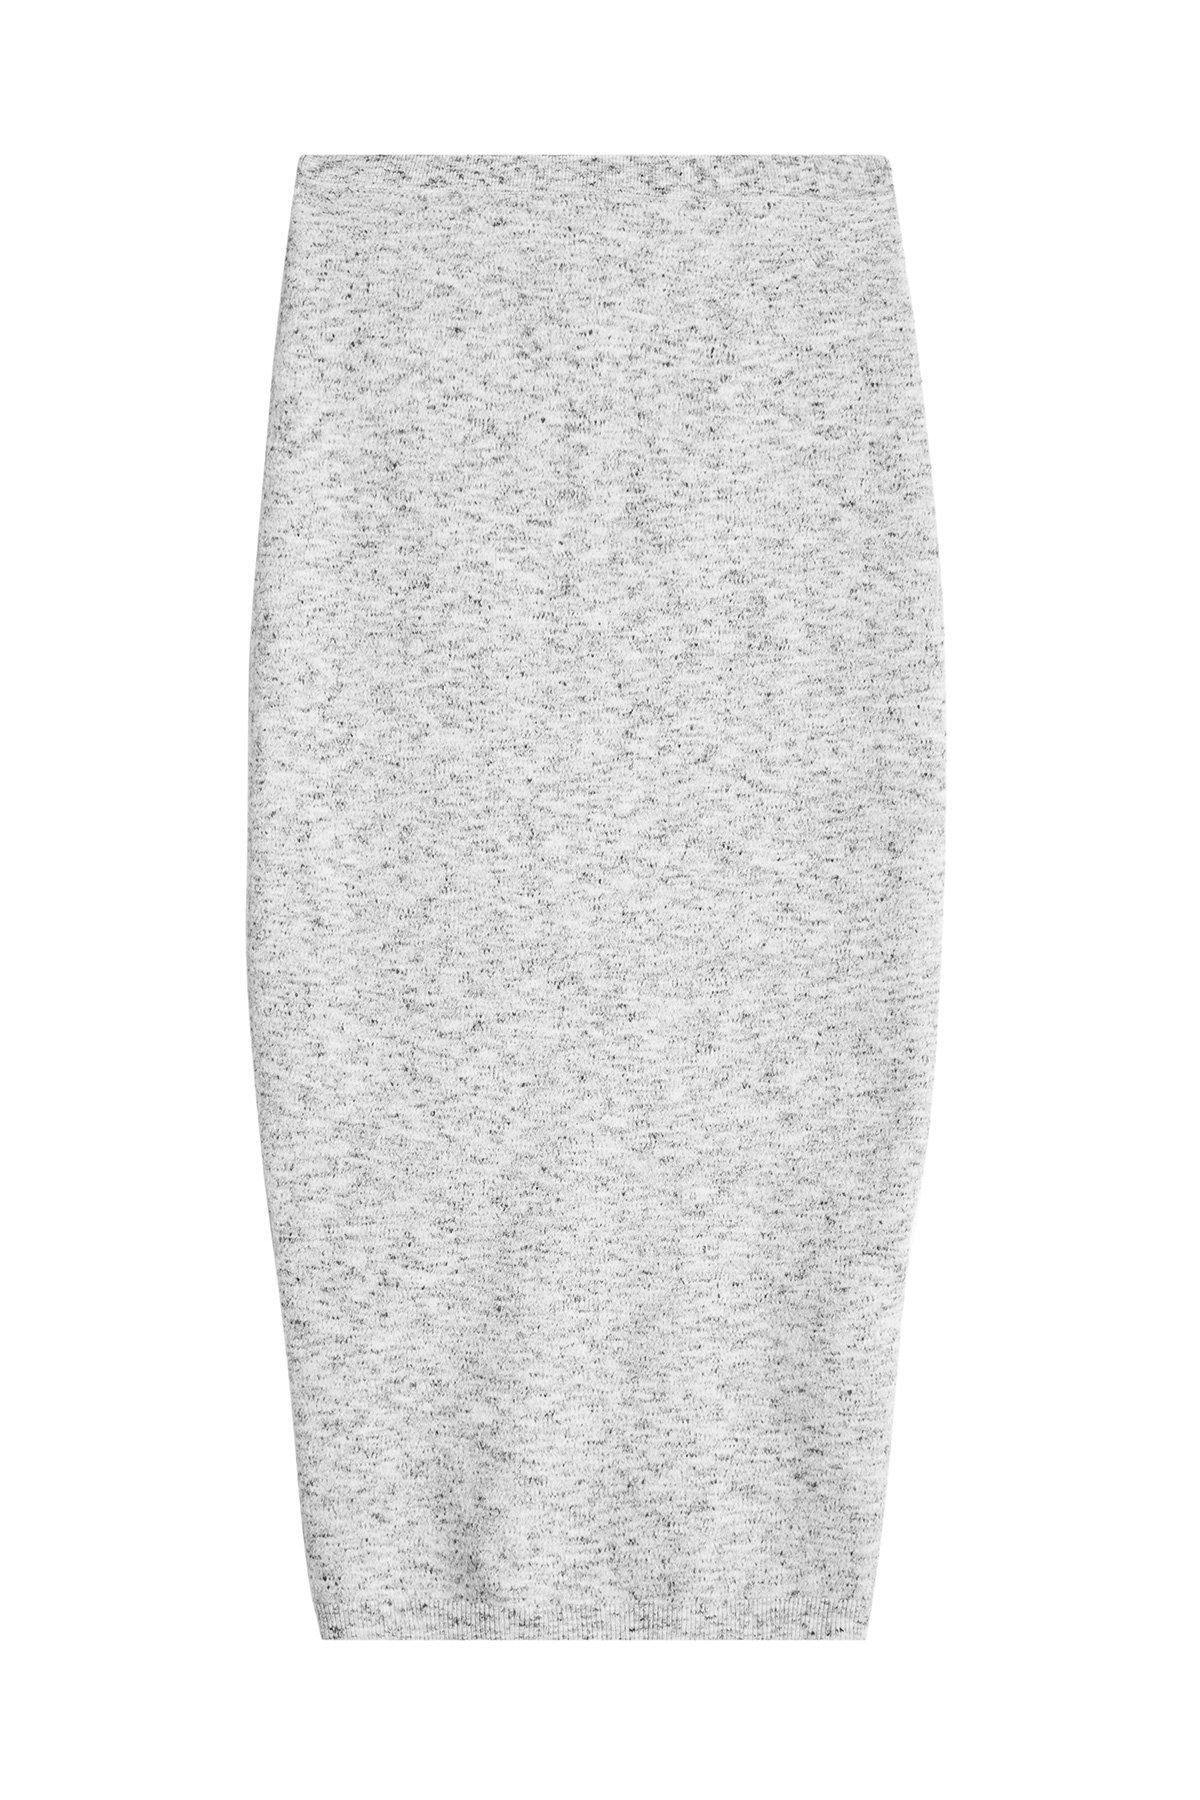 Victoria Beckham Pencil Skirt With Virgin Wool And Alpaca In Multicolored